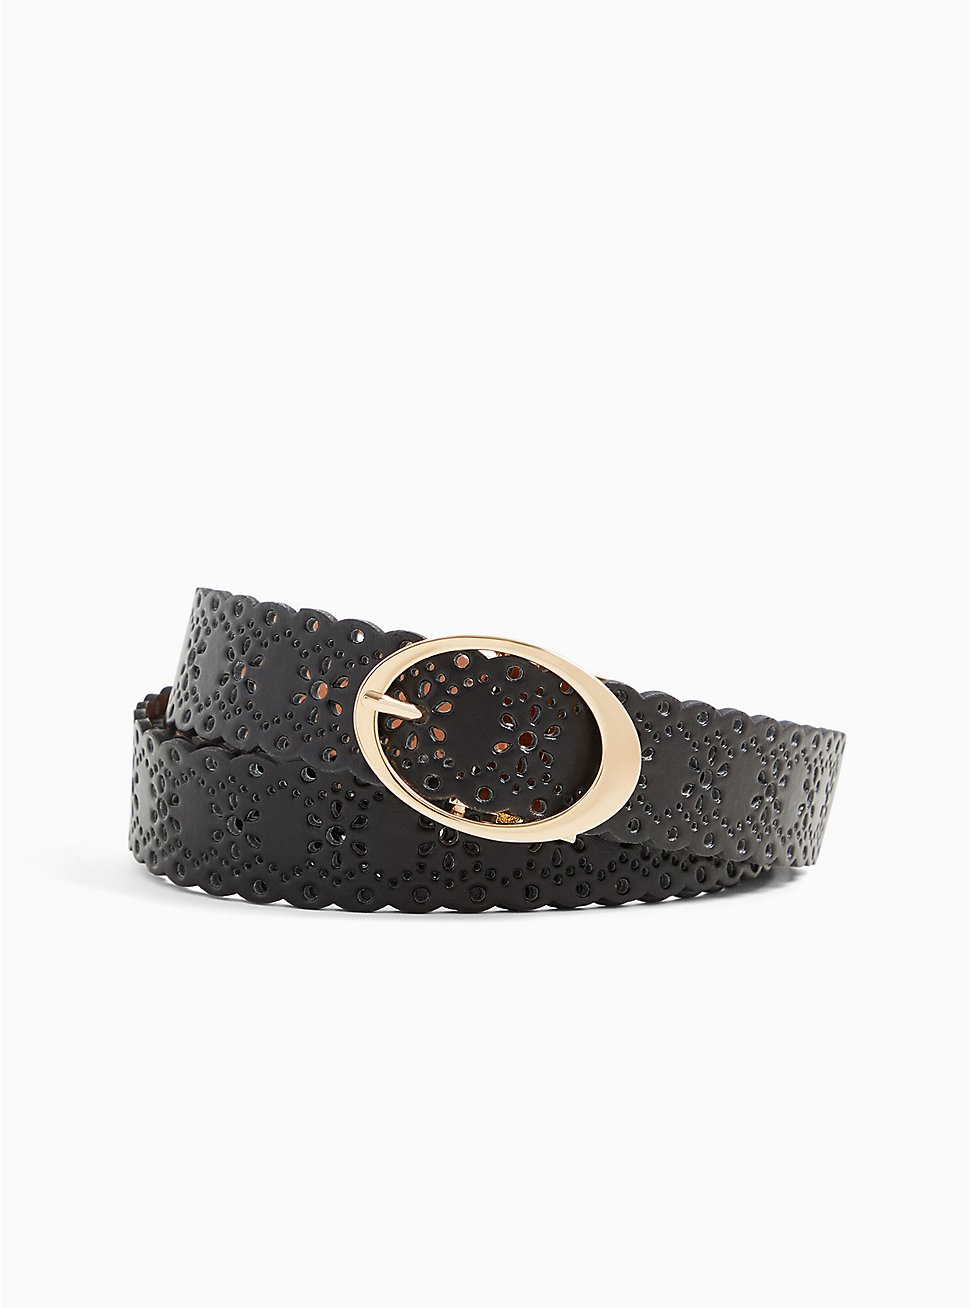 Reversible Black & Tan Faux Leather Scalloped Belt , BLACK, hi-res